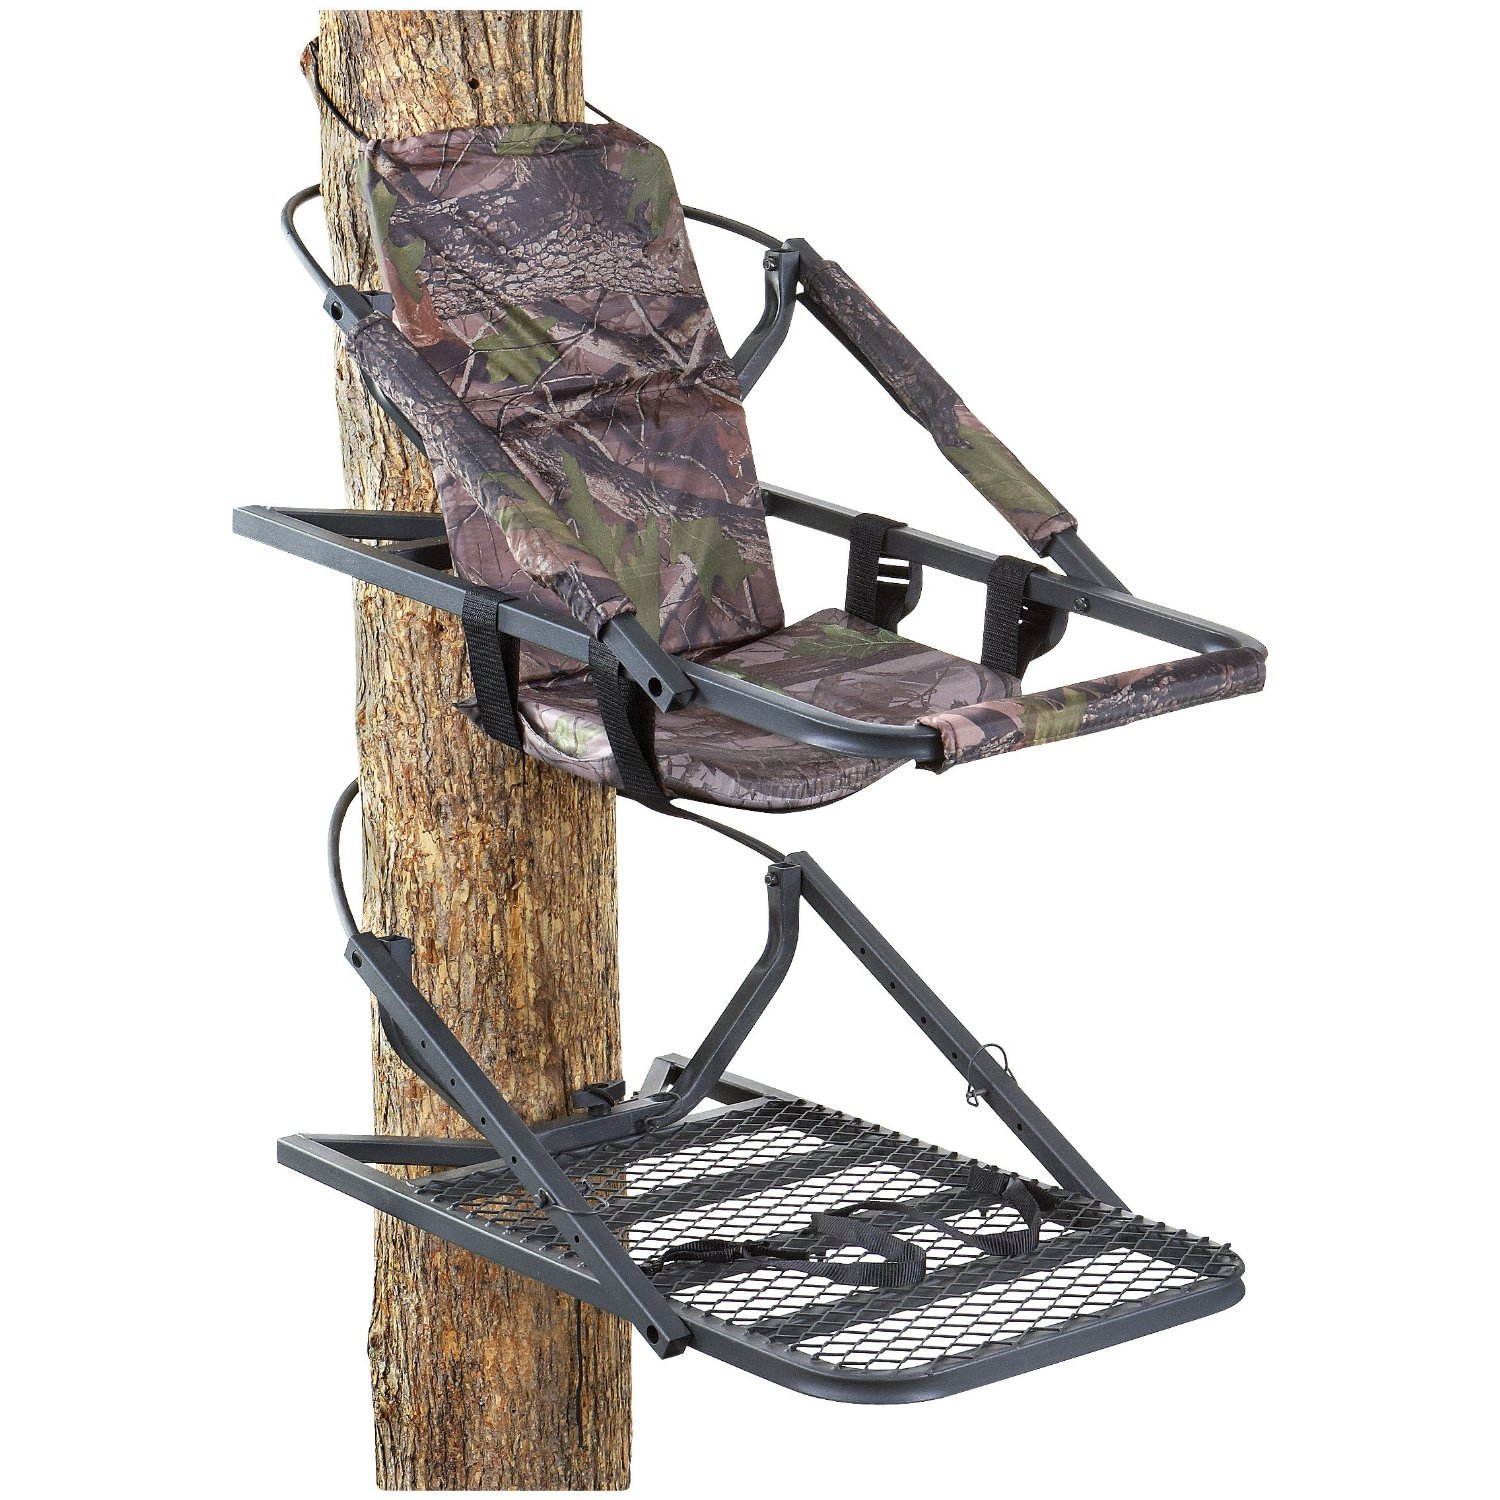 Image gallery tree stand for Climbing tree stand plans